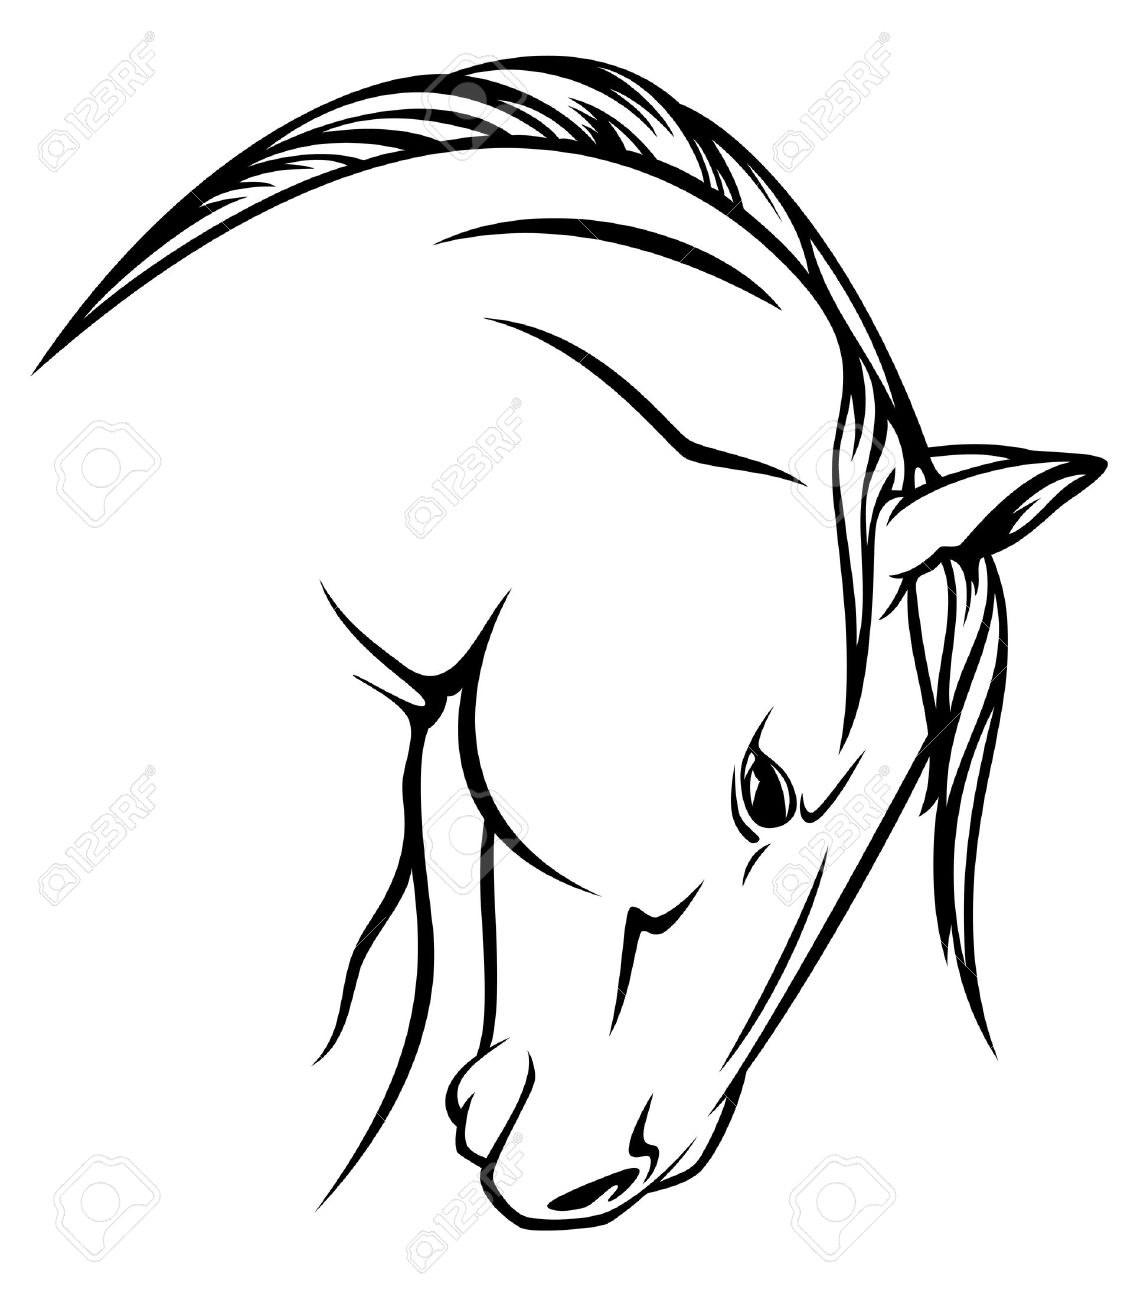 1124x1300 Outline Drawing Of A Horse